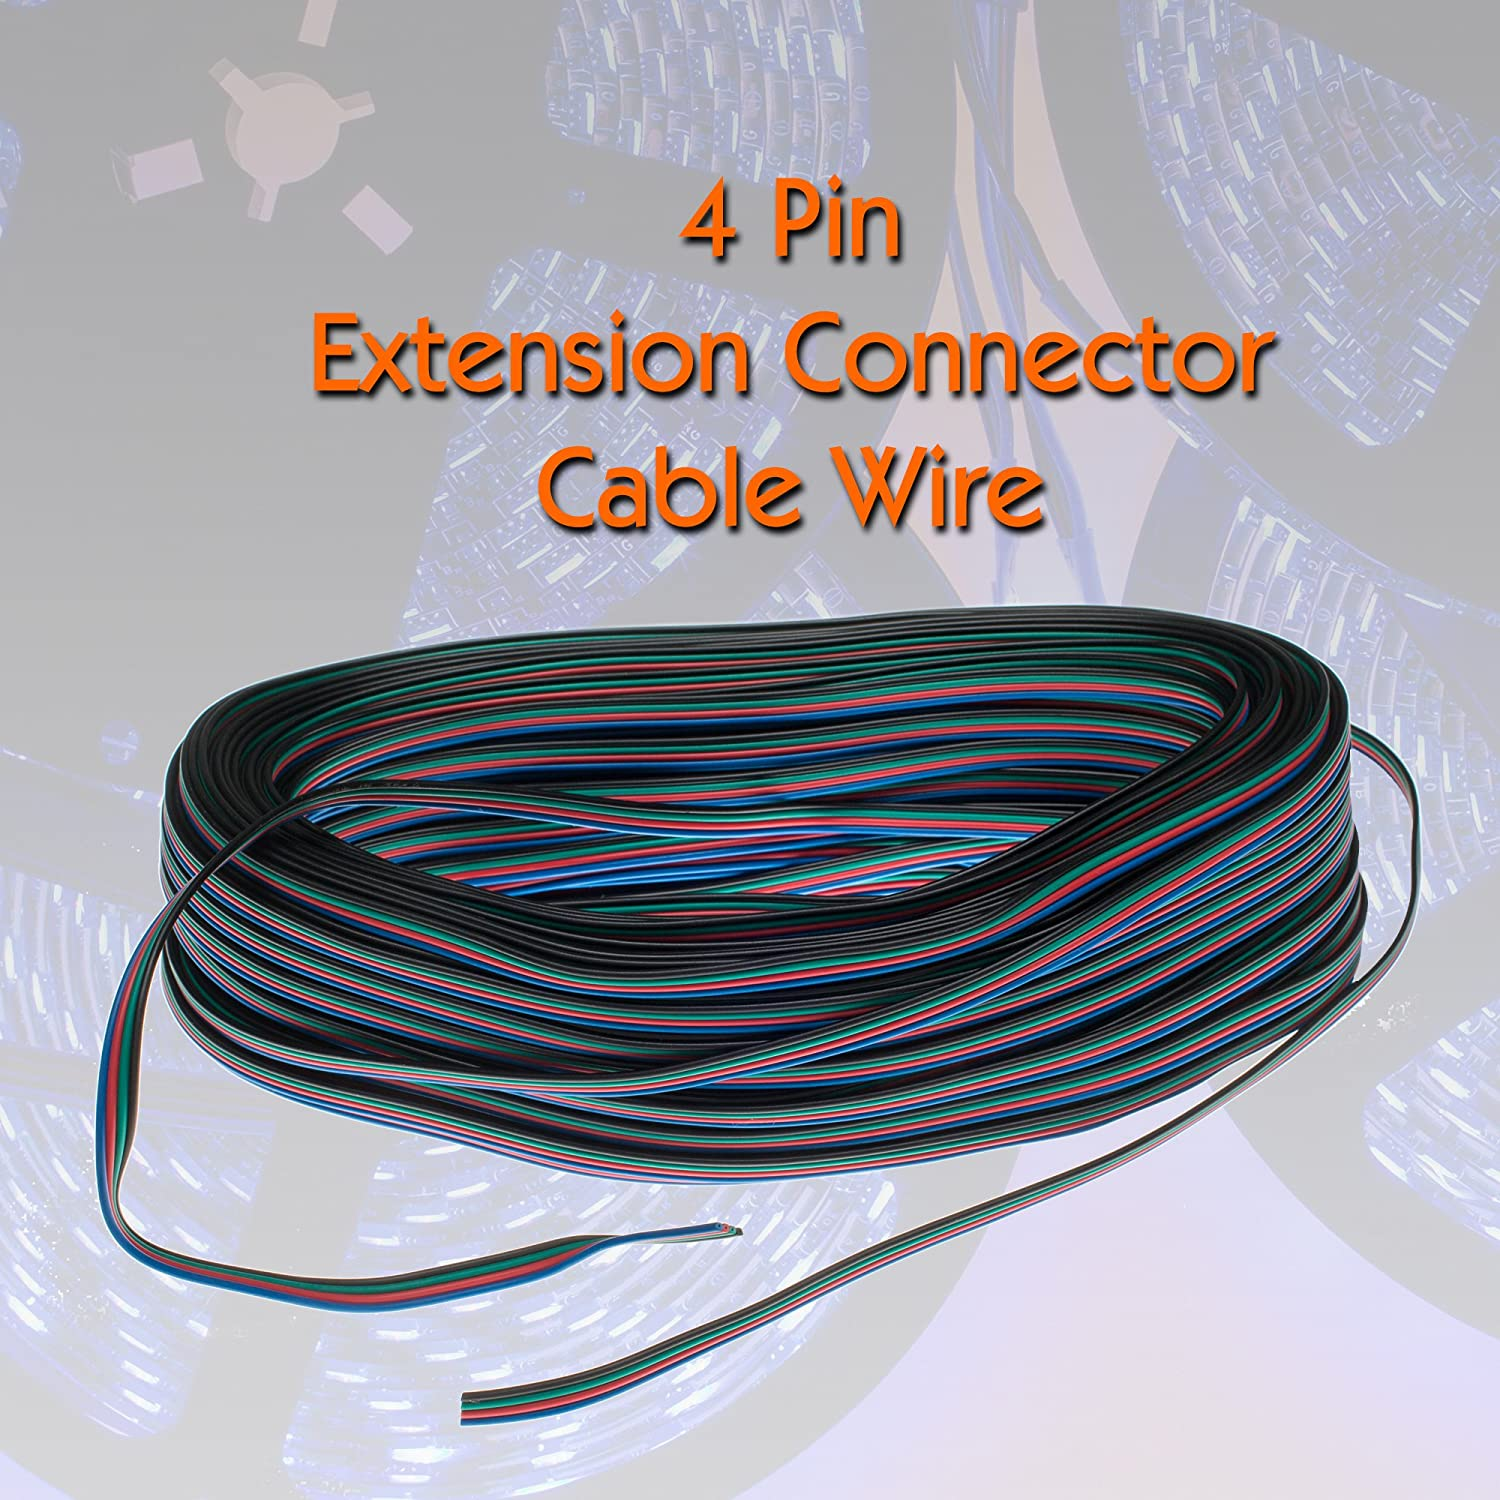 4 Pin Extension Connector Cable Wire 5050 3528 LED RGB Strip - 5 Meters / 16.4 ft